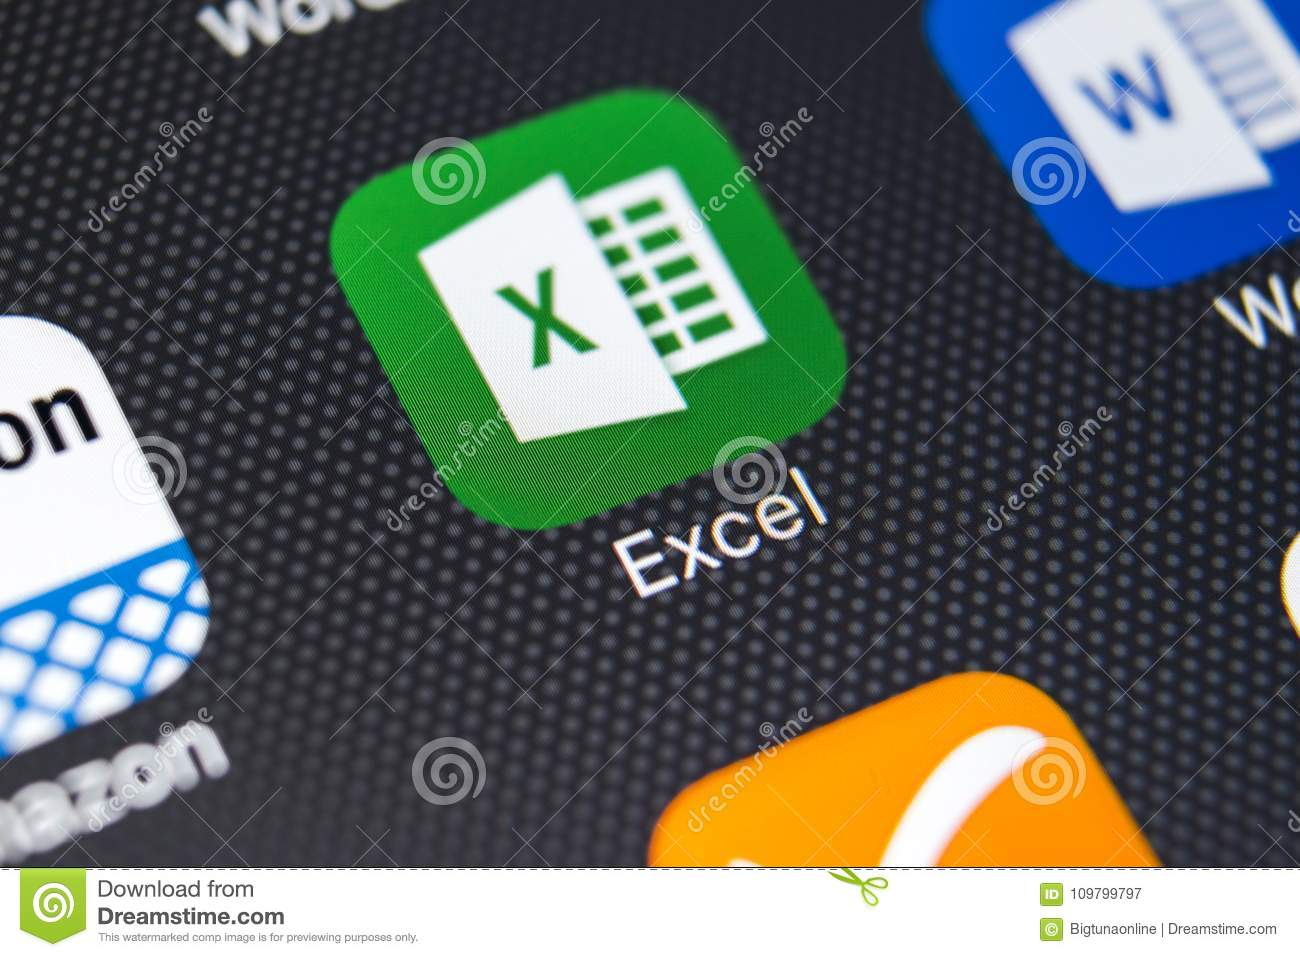 Exel application icon on Apple iPhone X screen close-up. Exel app icon. Microsoft office on mobile phone. Social media